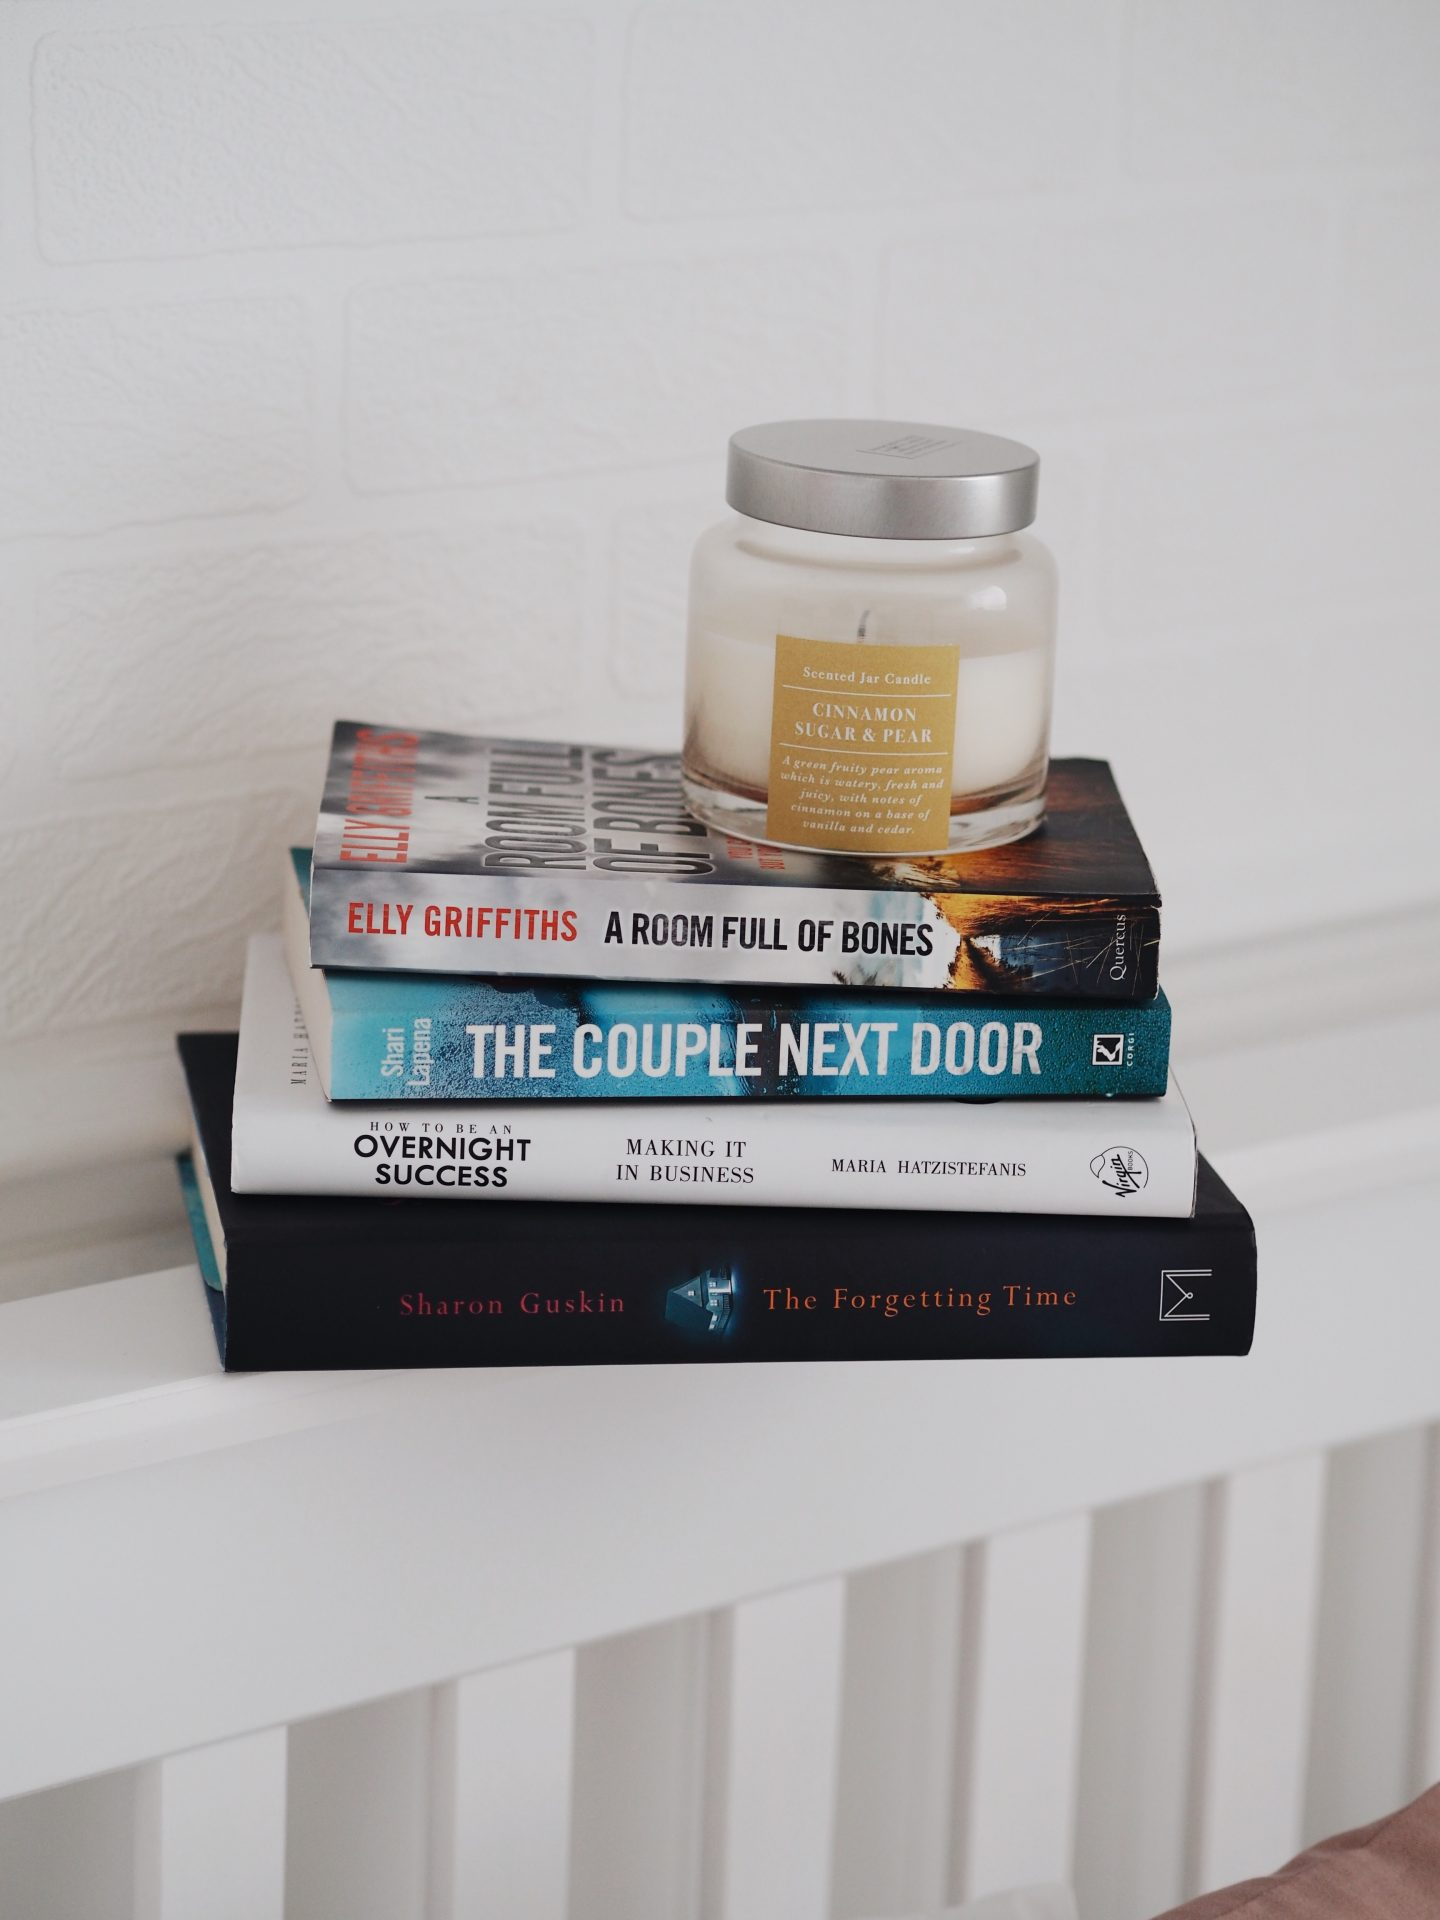 5 AUTUMN READS TO COSY UP TO